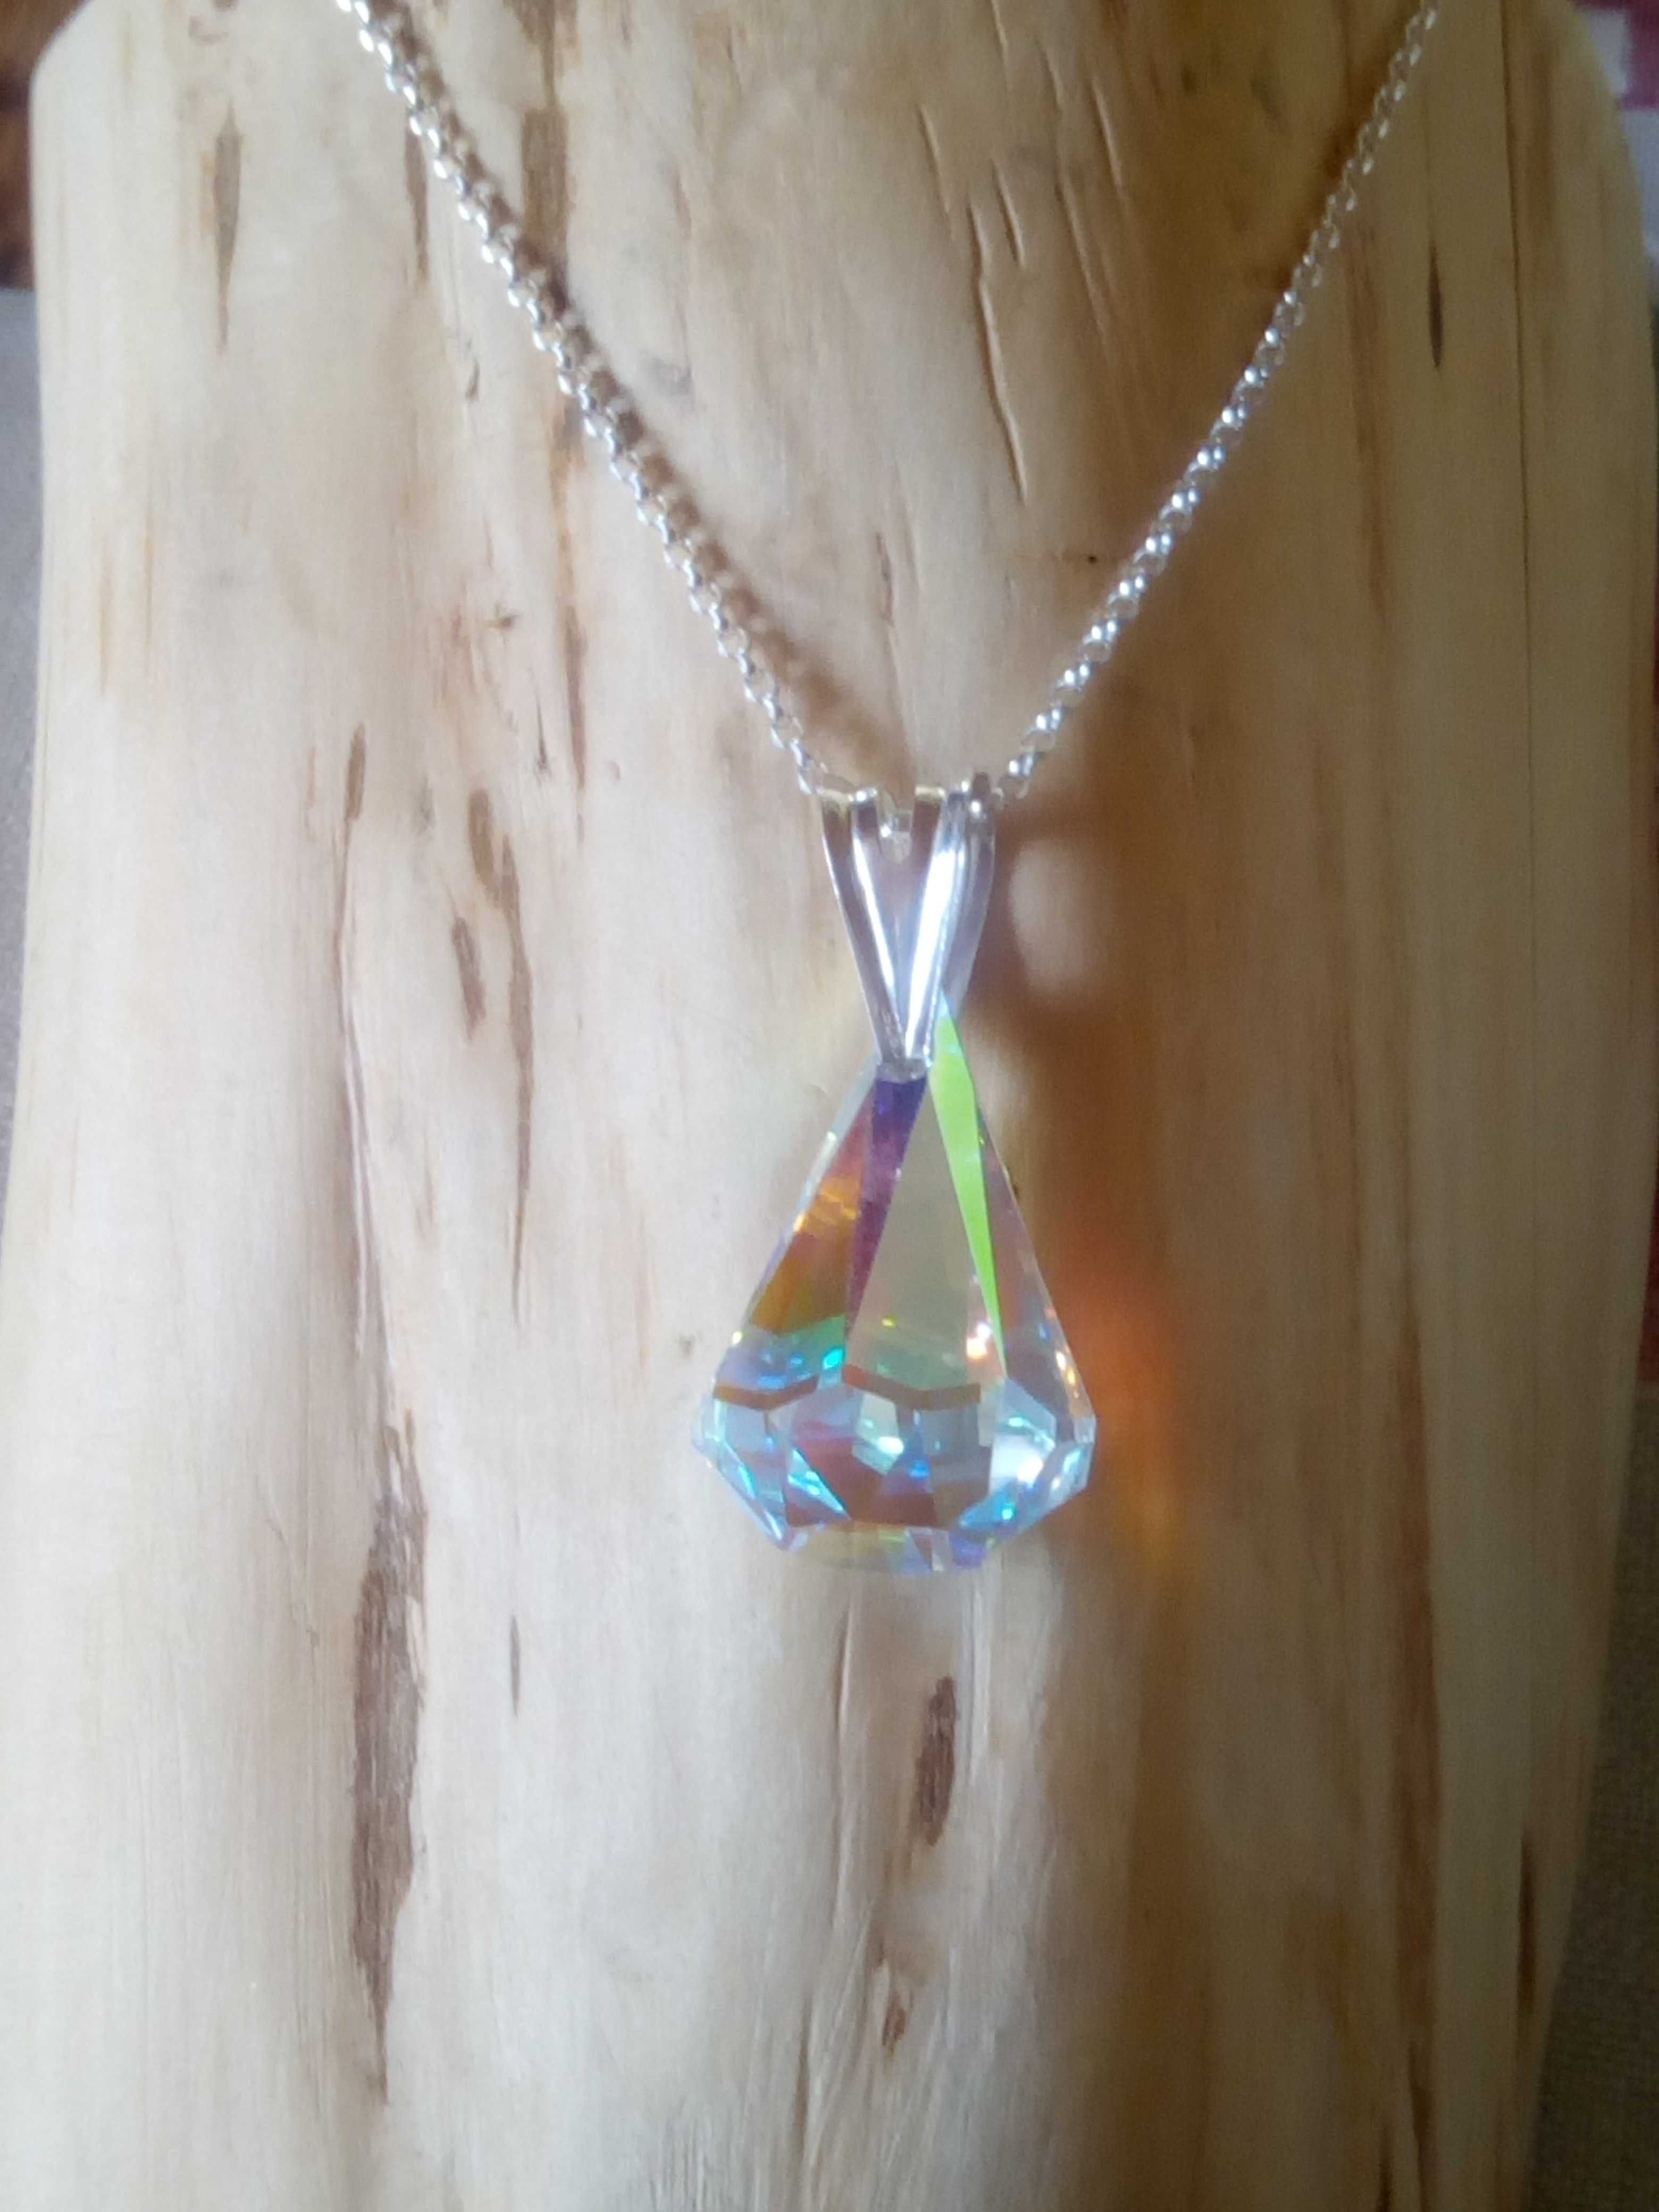 Sterling Silver Chain and Pendant with AB Swarovski Crystal 16mm